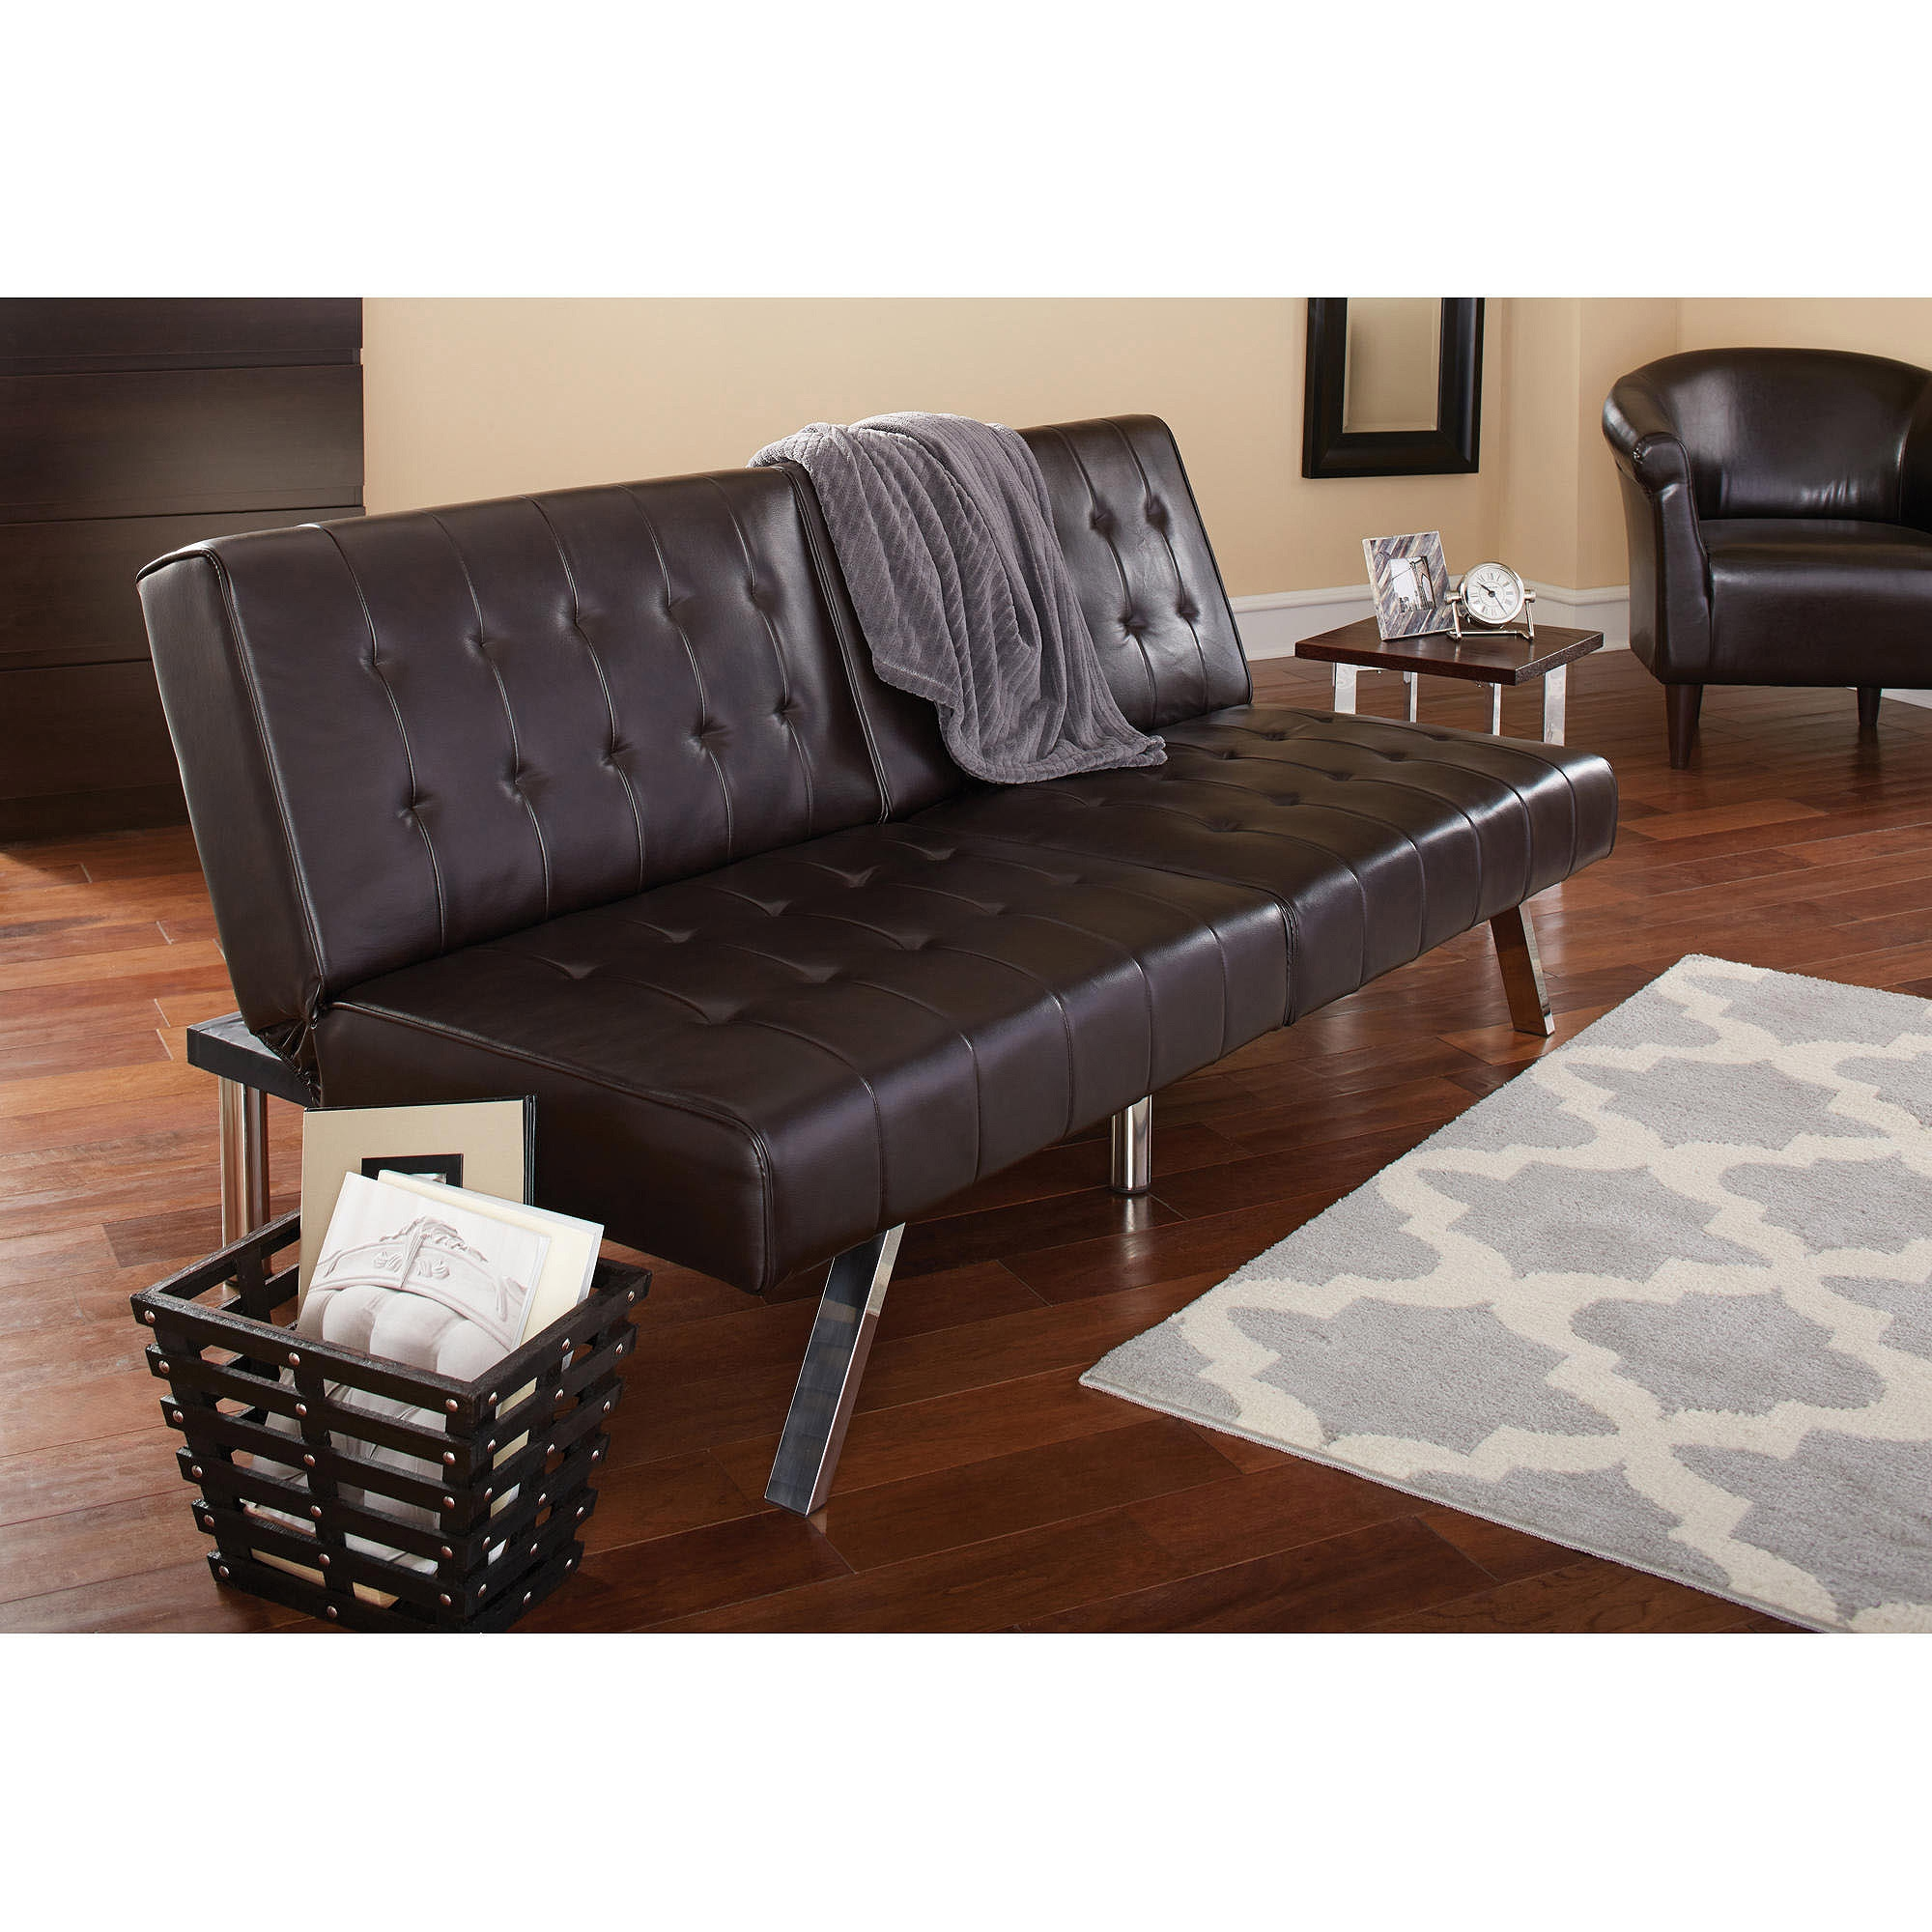 Barcelona Convertible Futon Sofa Bed And Lounger With Pillows With Convertible Sofa Chair Bed (Image 1 of 15)